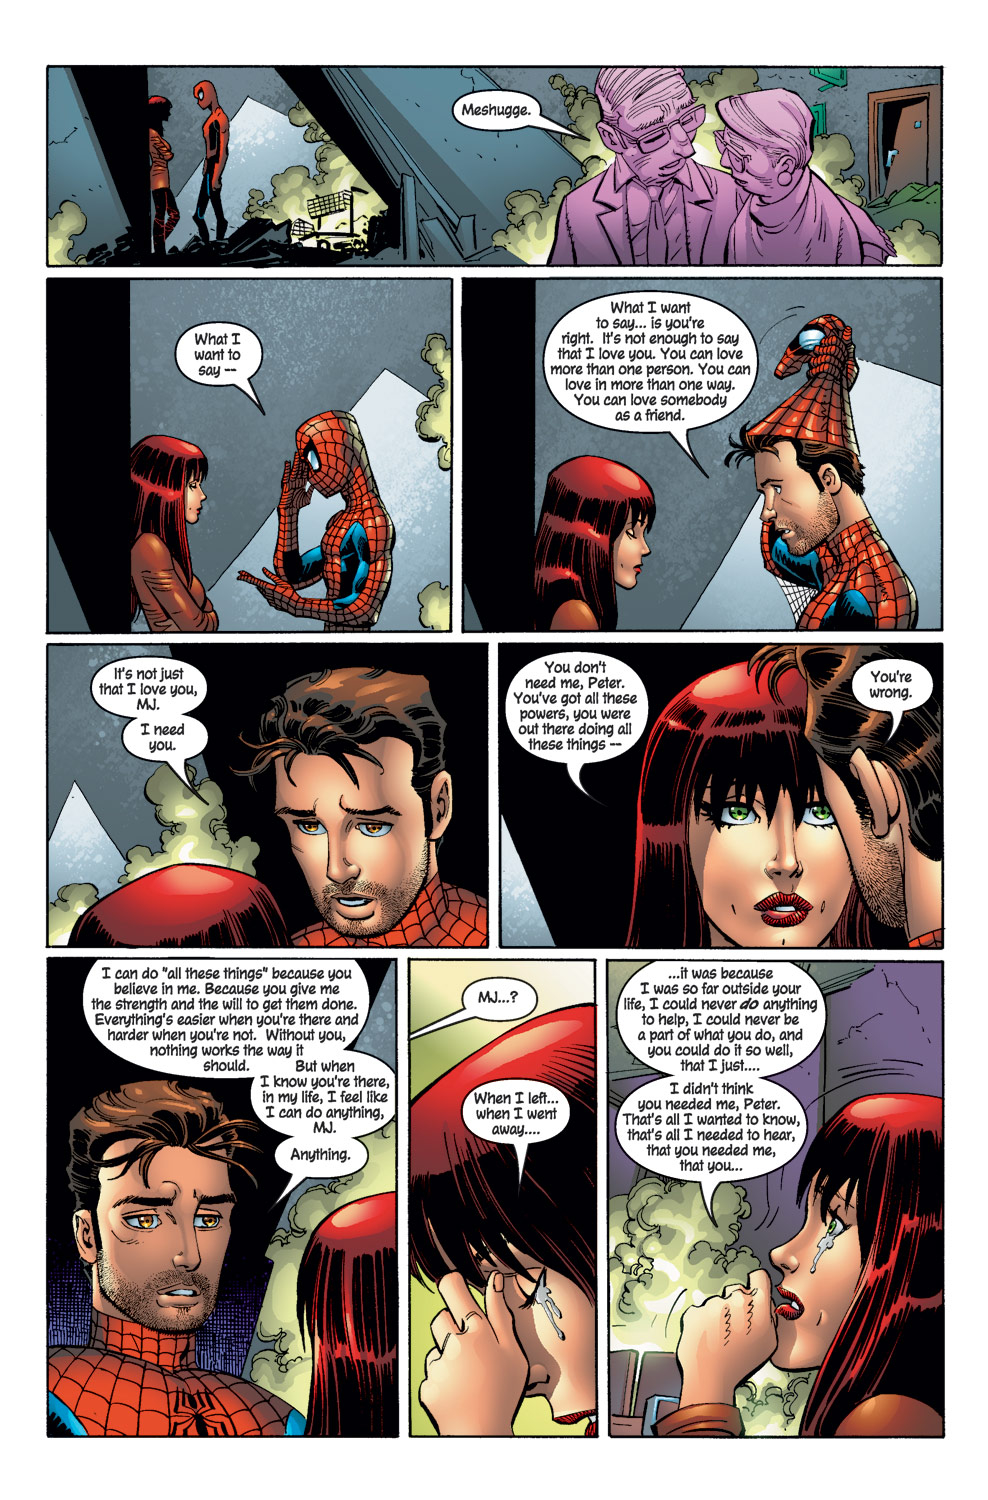 """Web of Love: """"Together Again"""" – Spider Man Crawlspace"""